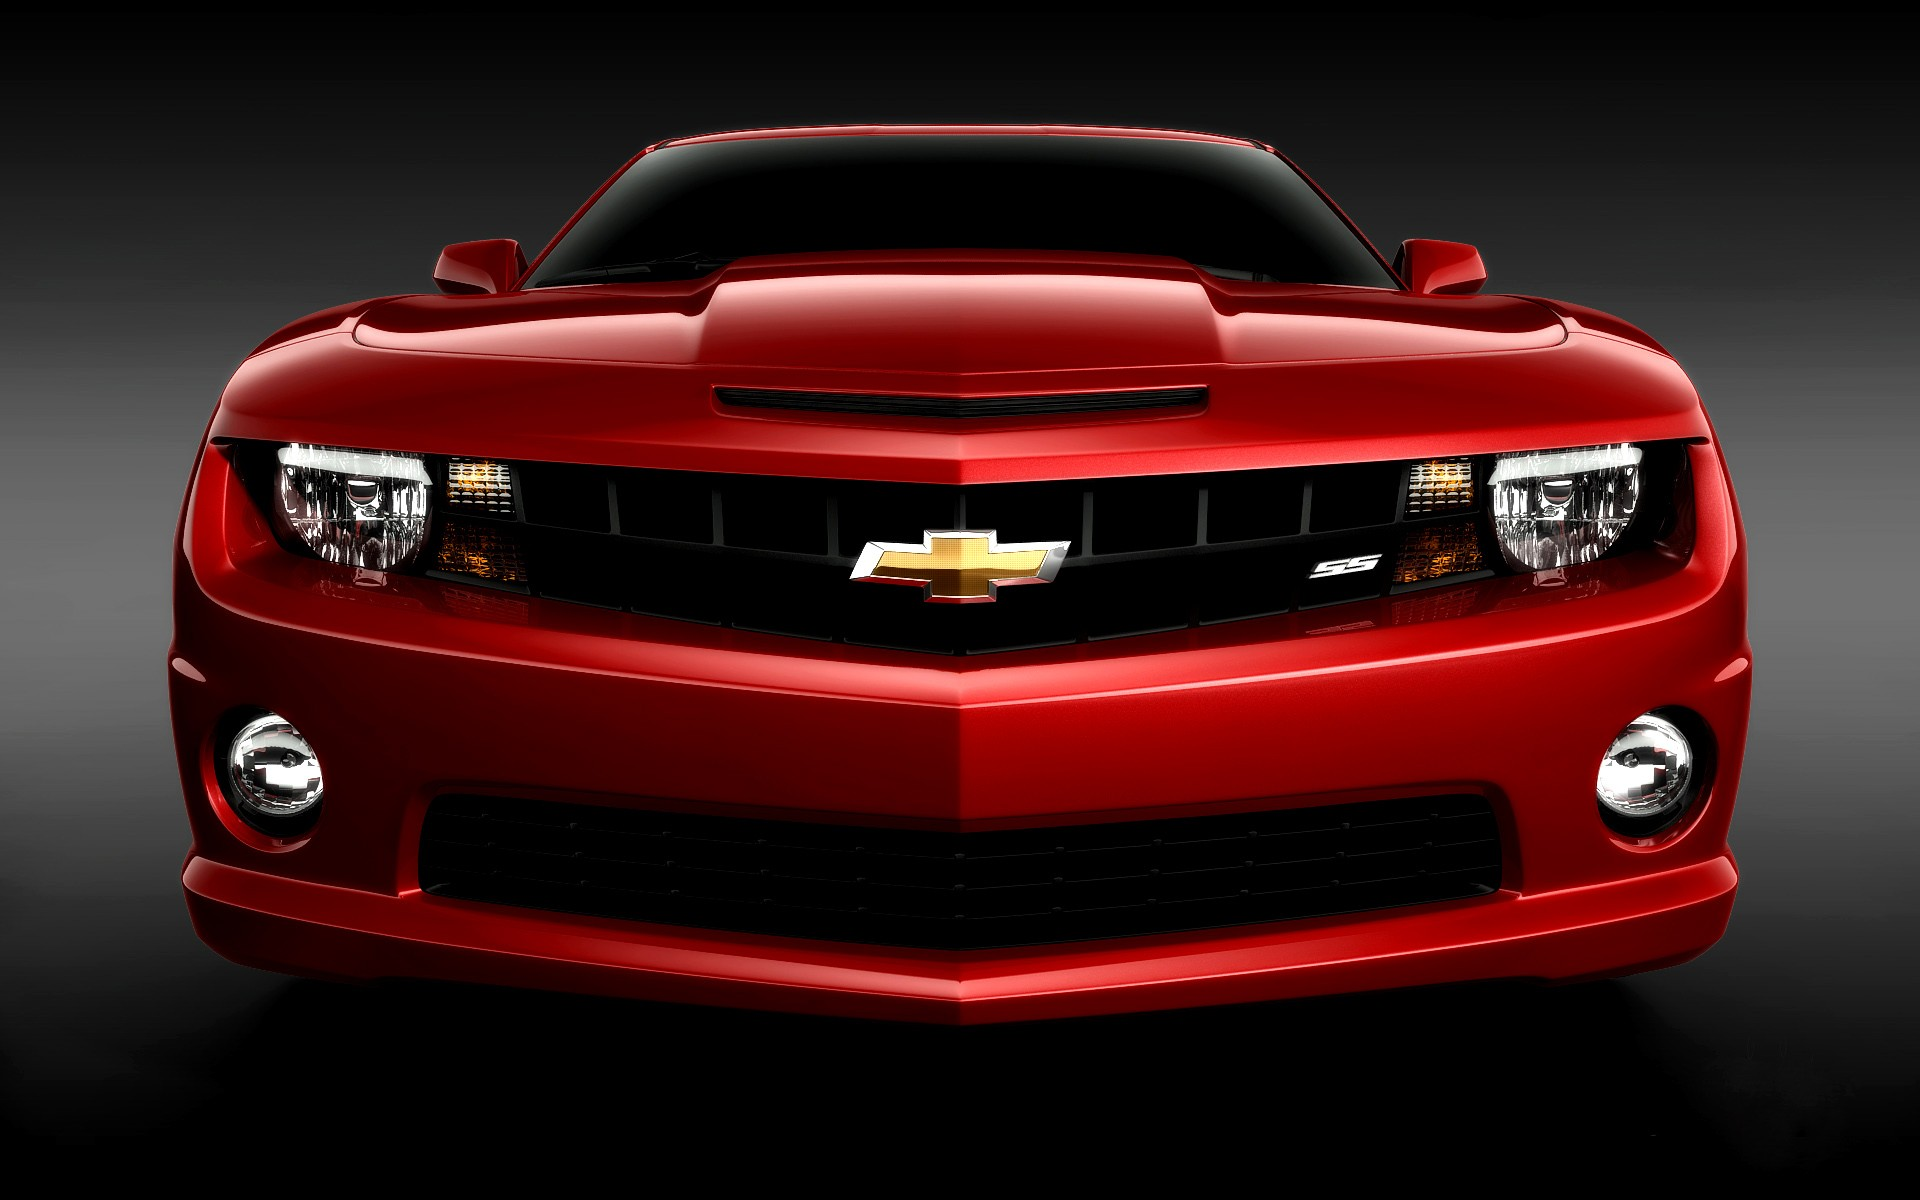 Chvrolet Camaro Rojo Hd 1920x1200 Imagenes Wallpapers